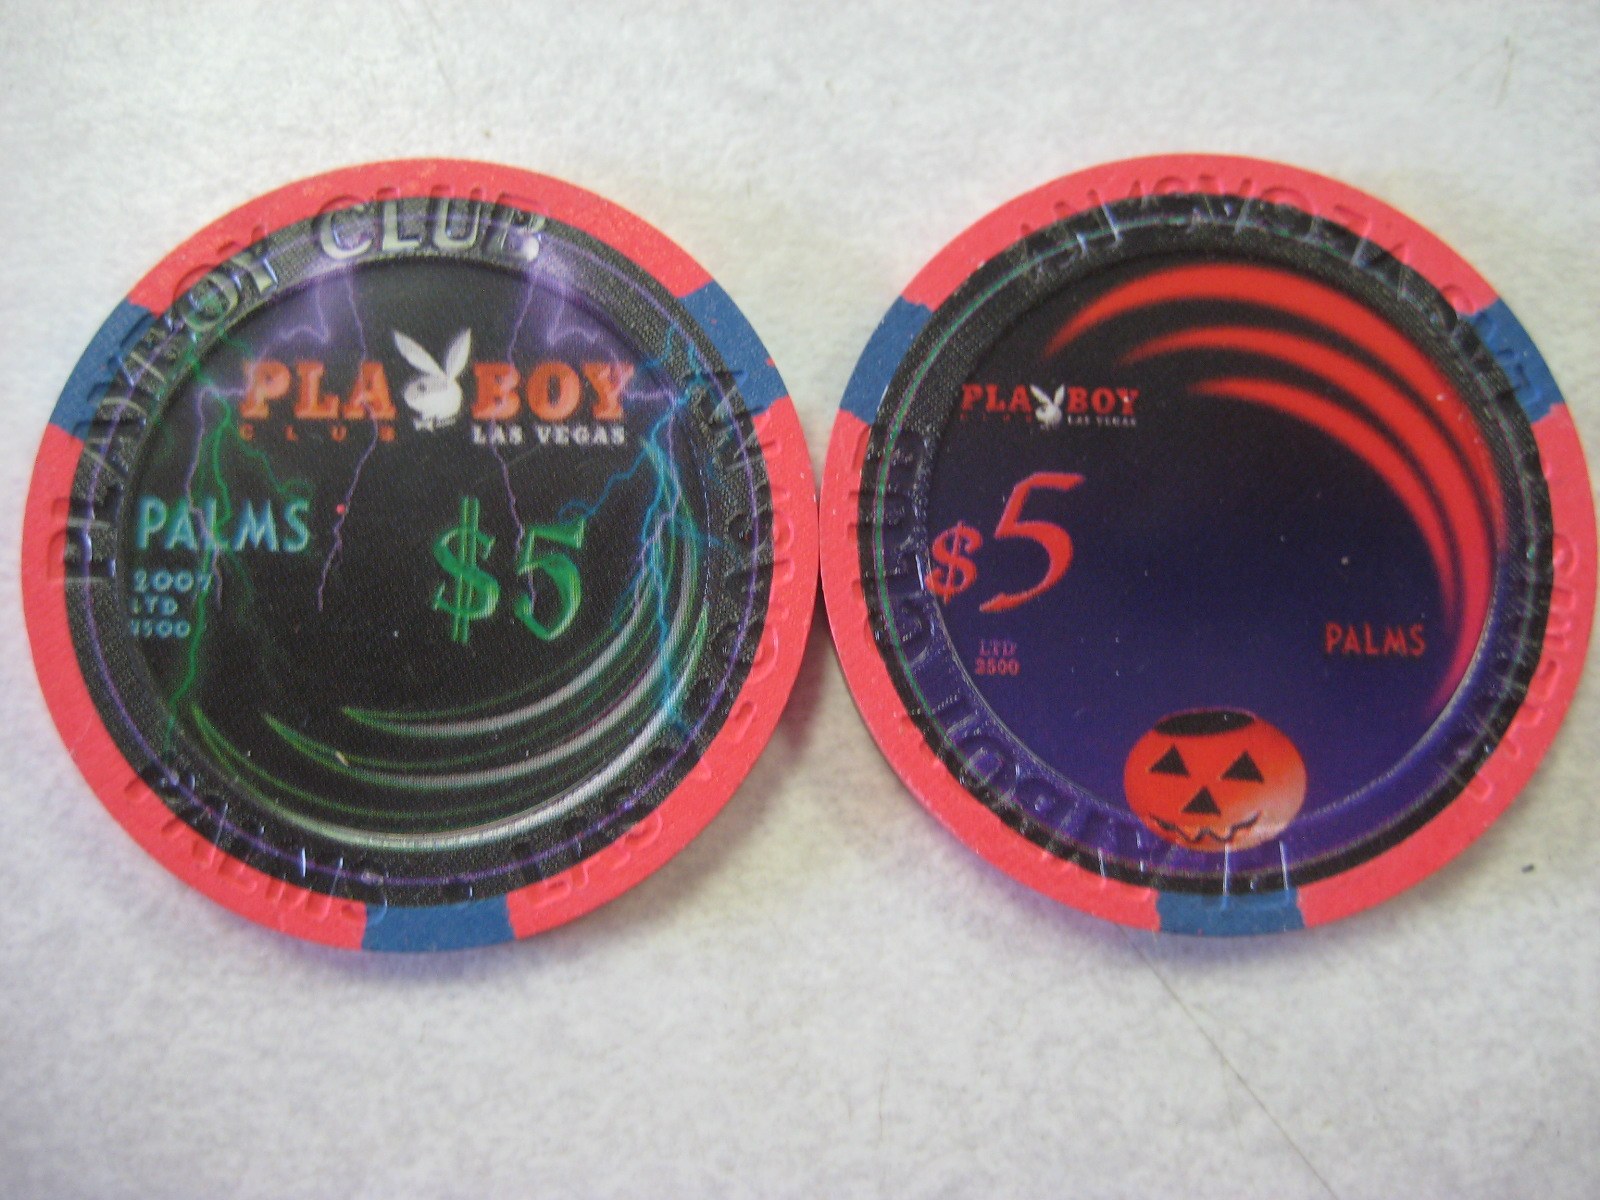 Playboy Club Halloween $5 Chips Palms 2007